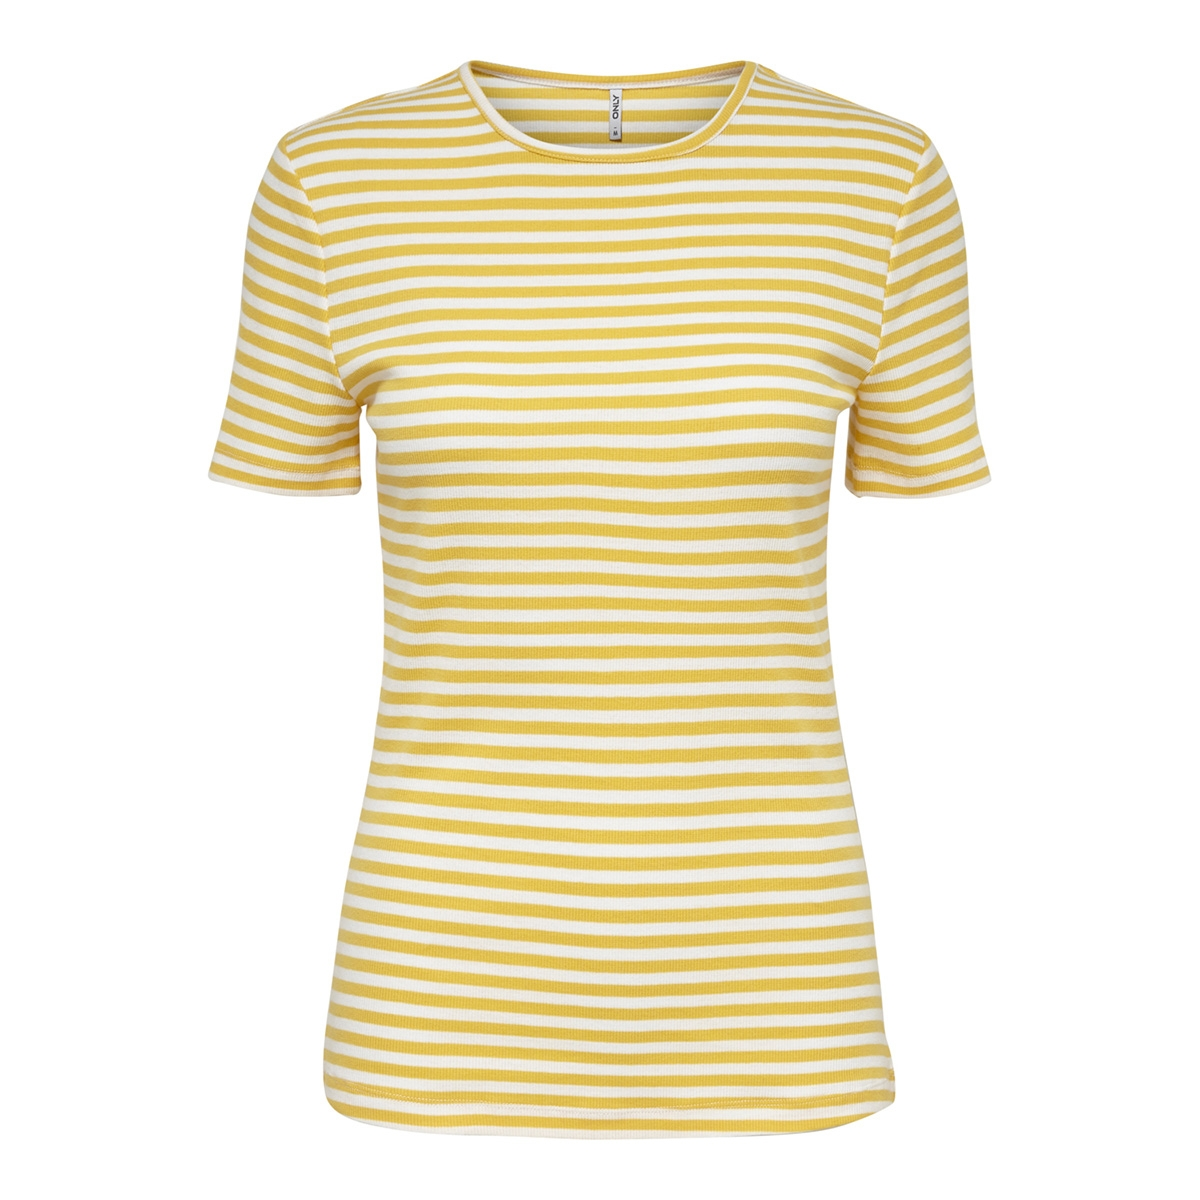 onlbella s/s reg top jrs 15178077 only t-shirt cloud dancer/yolk yellow